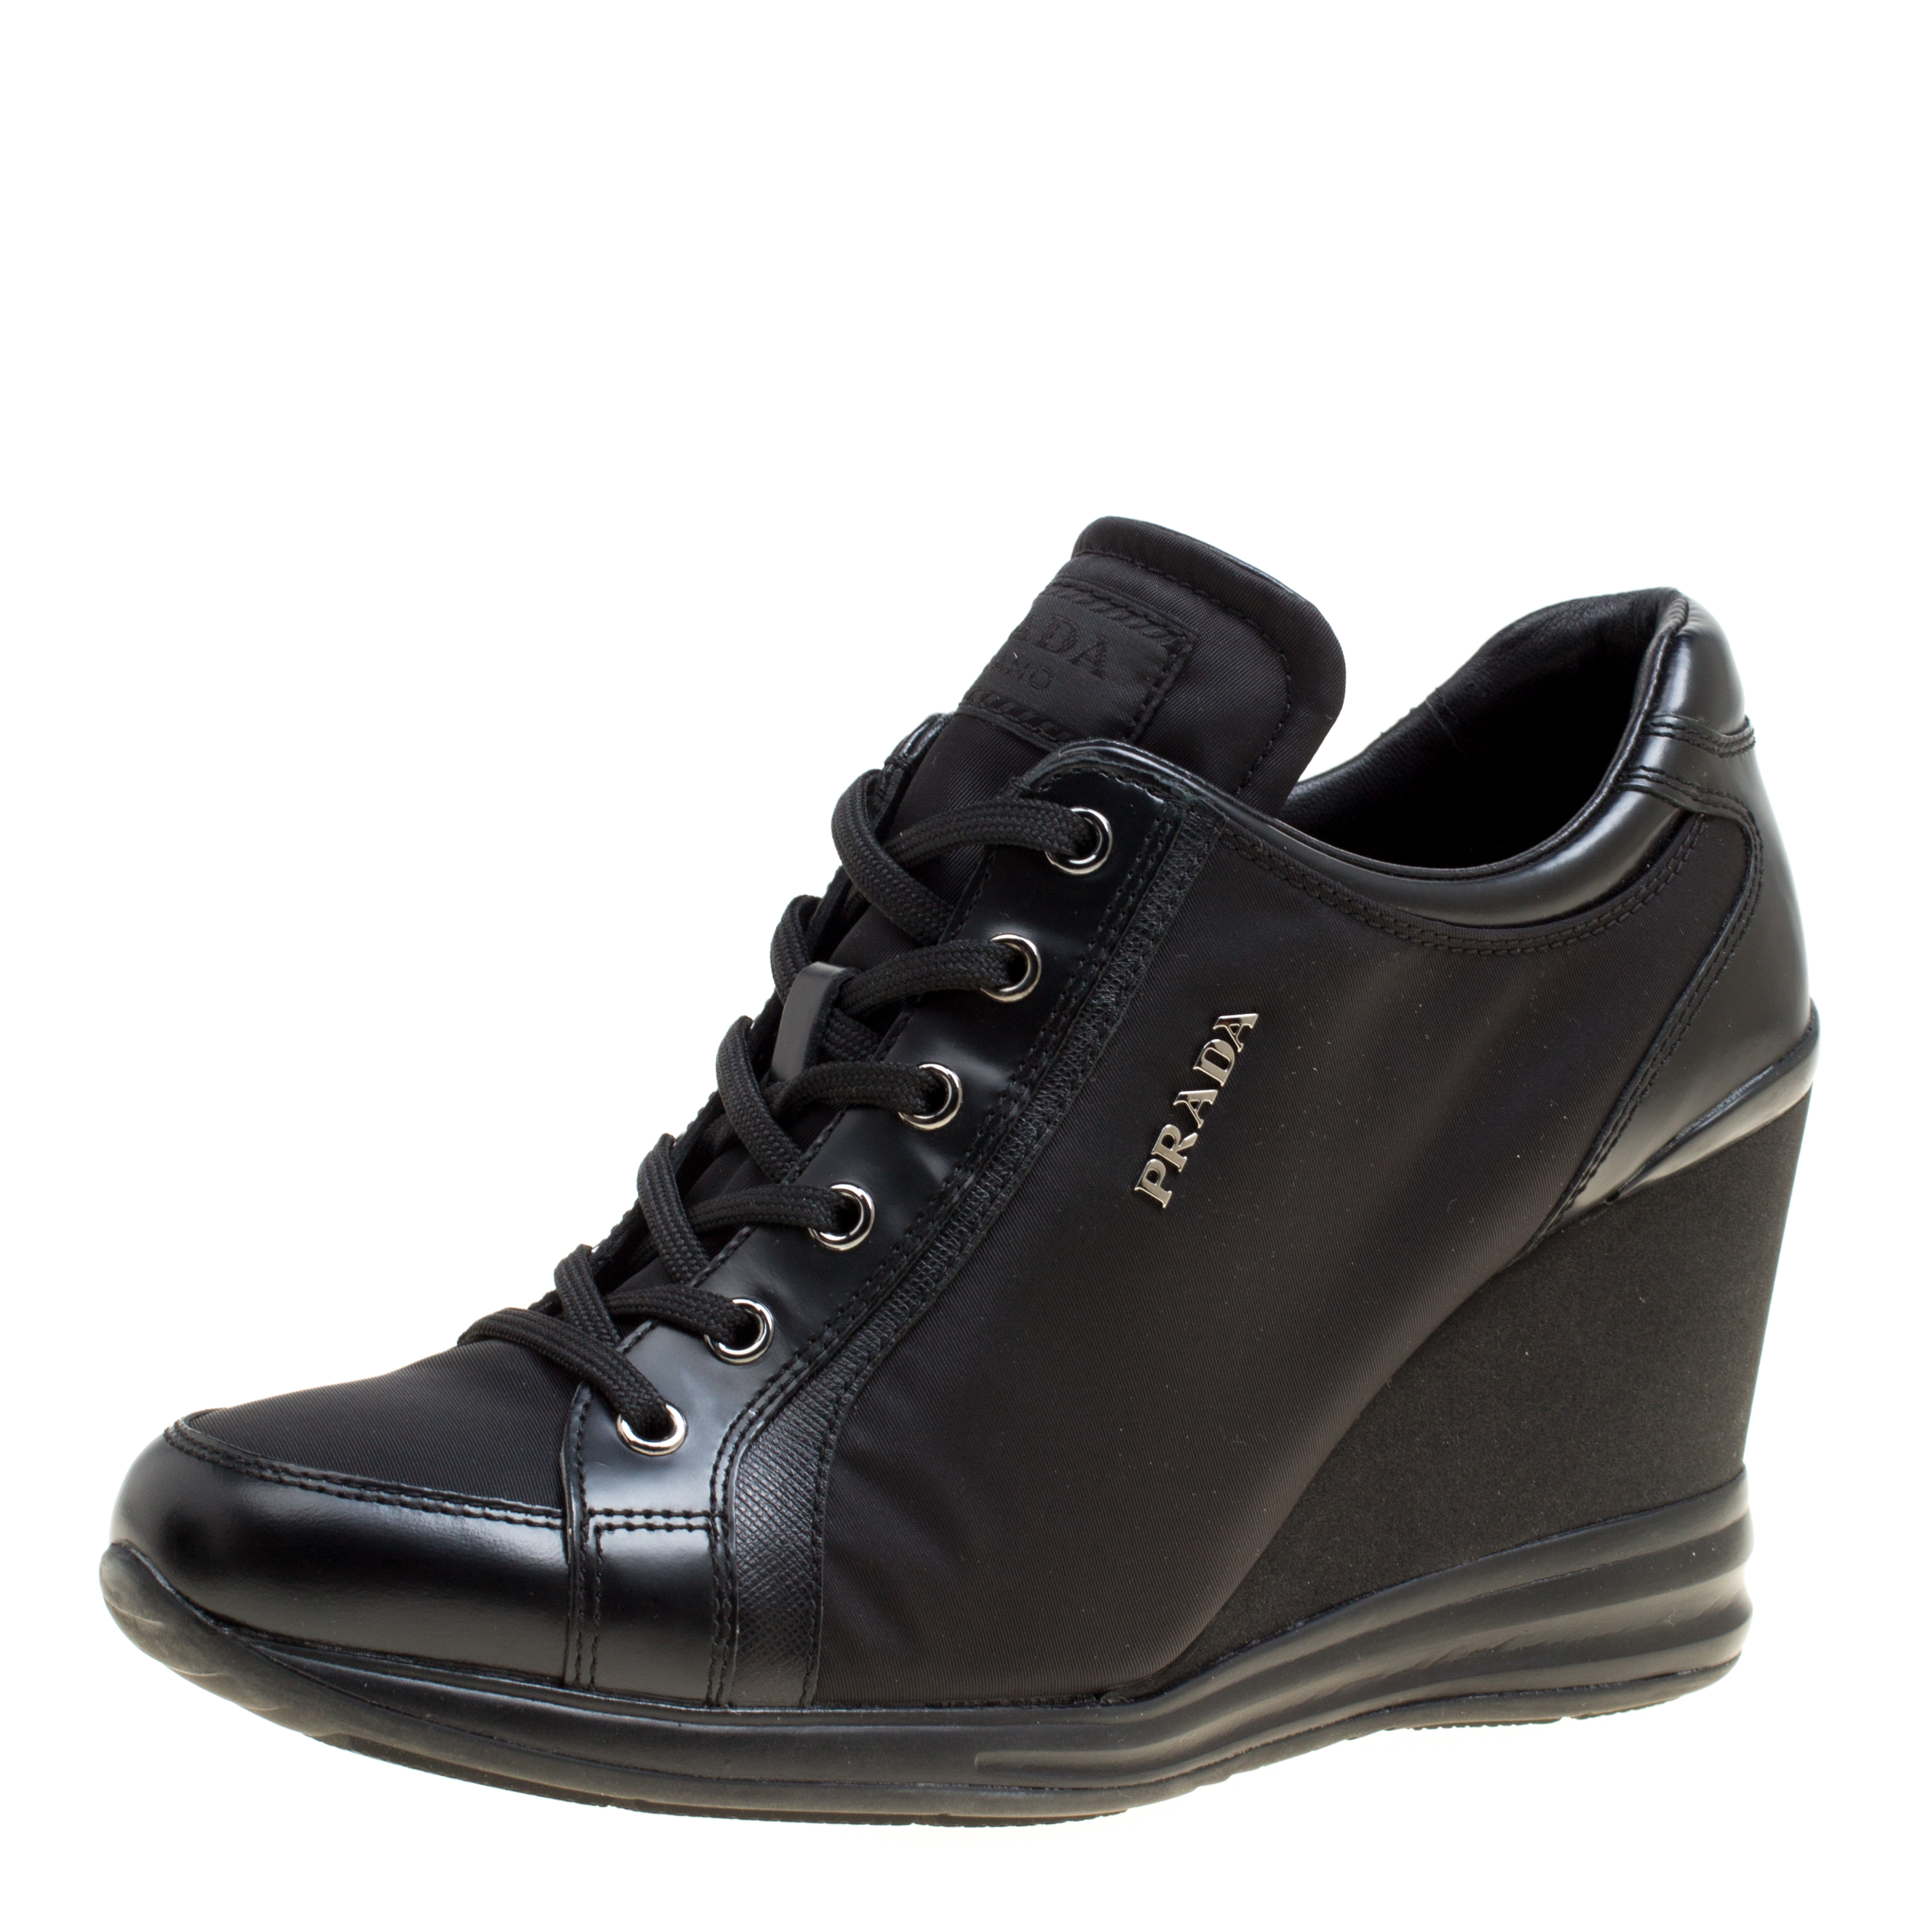 a9d8d9c1 Prada Sport Black Canvas and Leather Wedge Sneakers Size 39.5